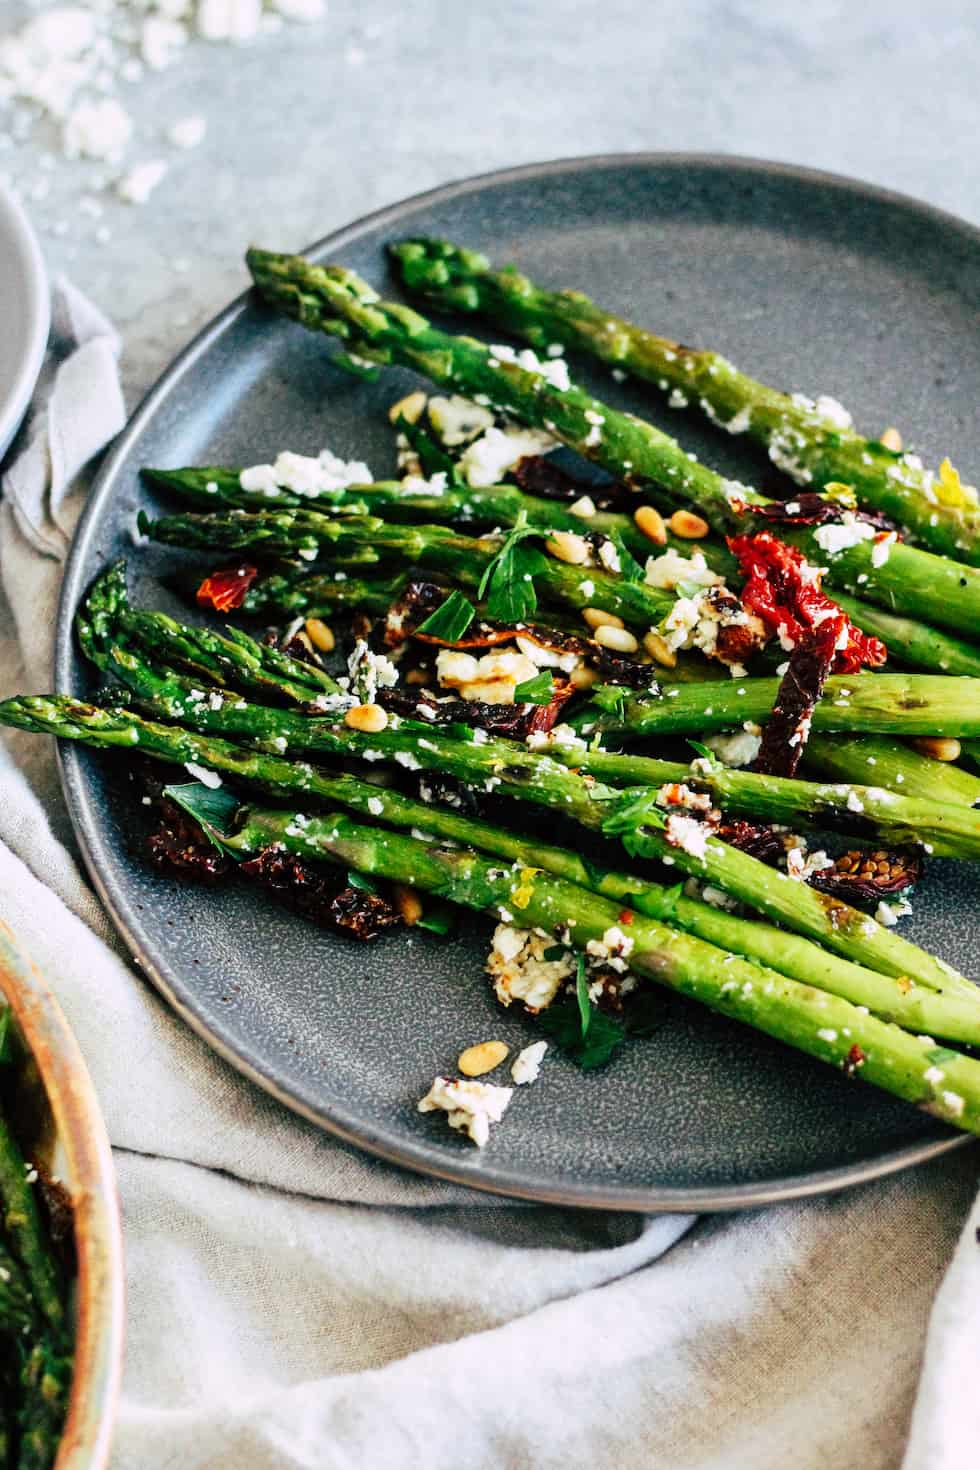 Asparagus spears on a gray plate with sun-dried tomato and feta cheese.